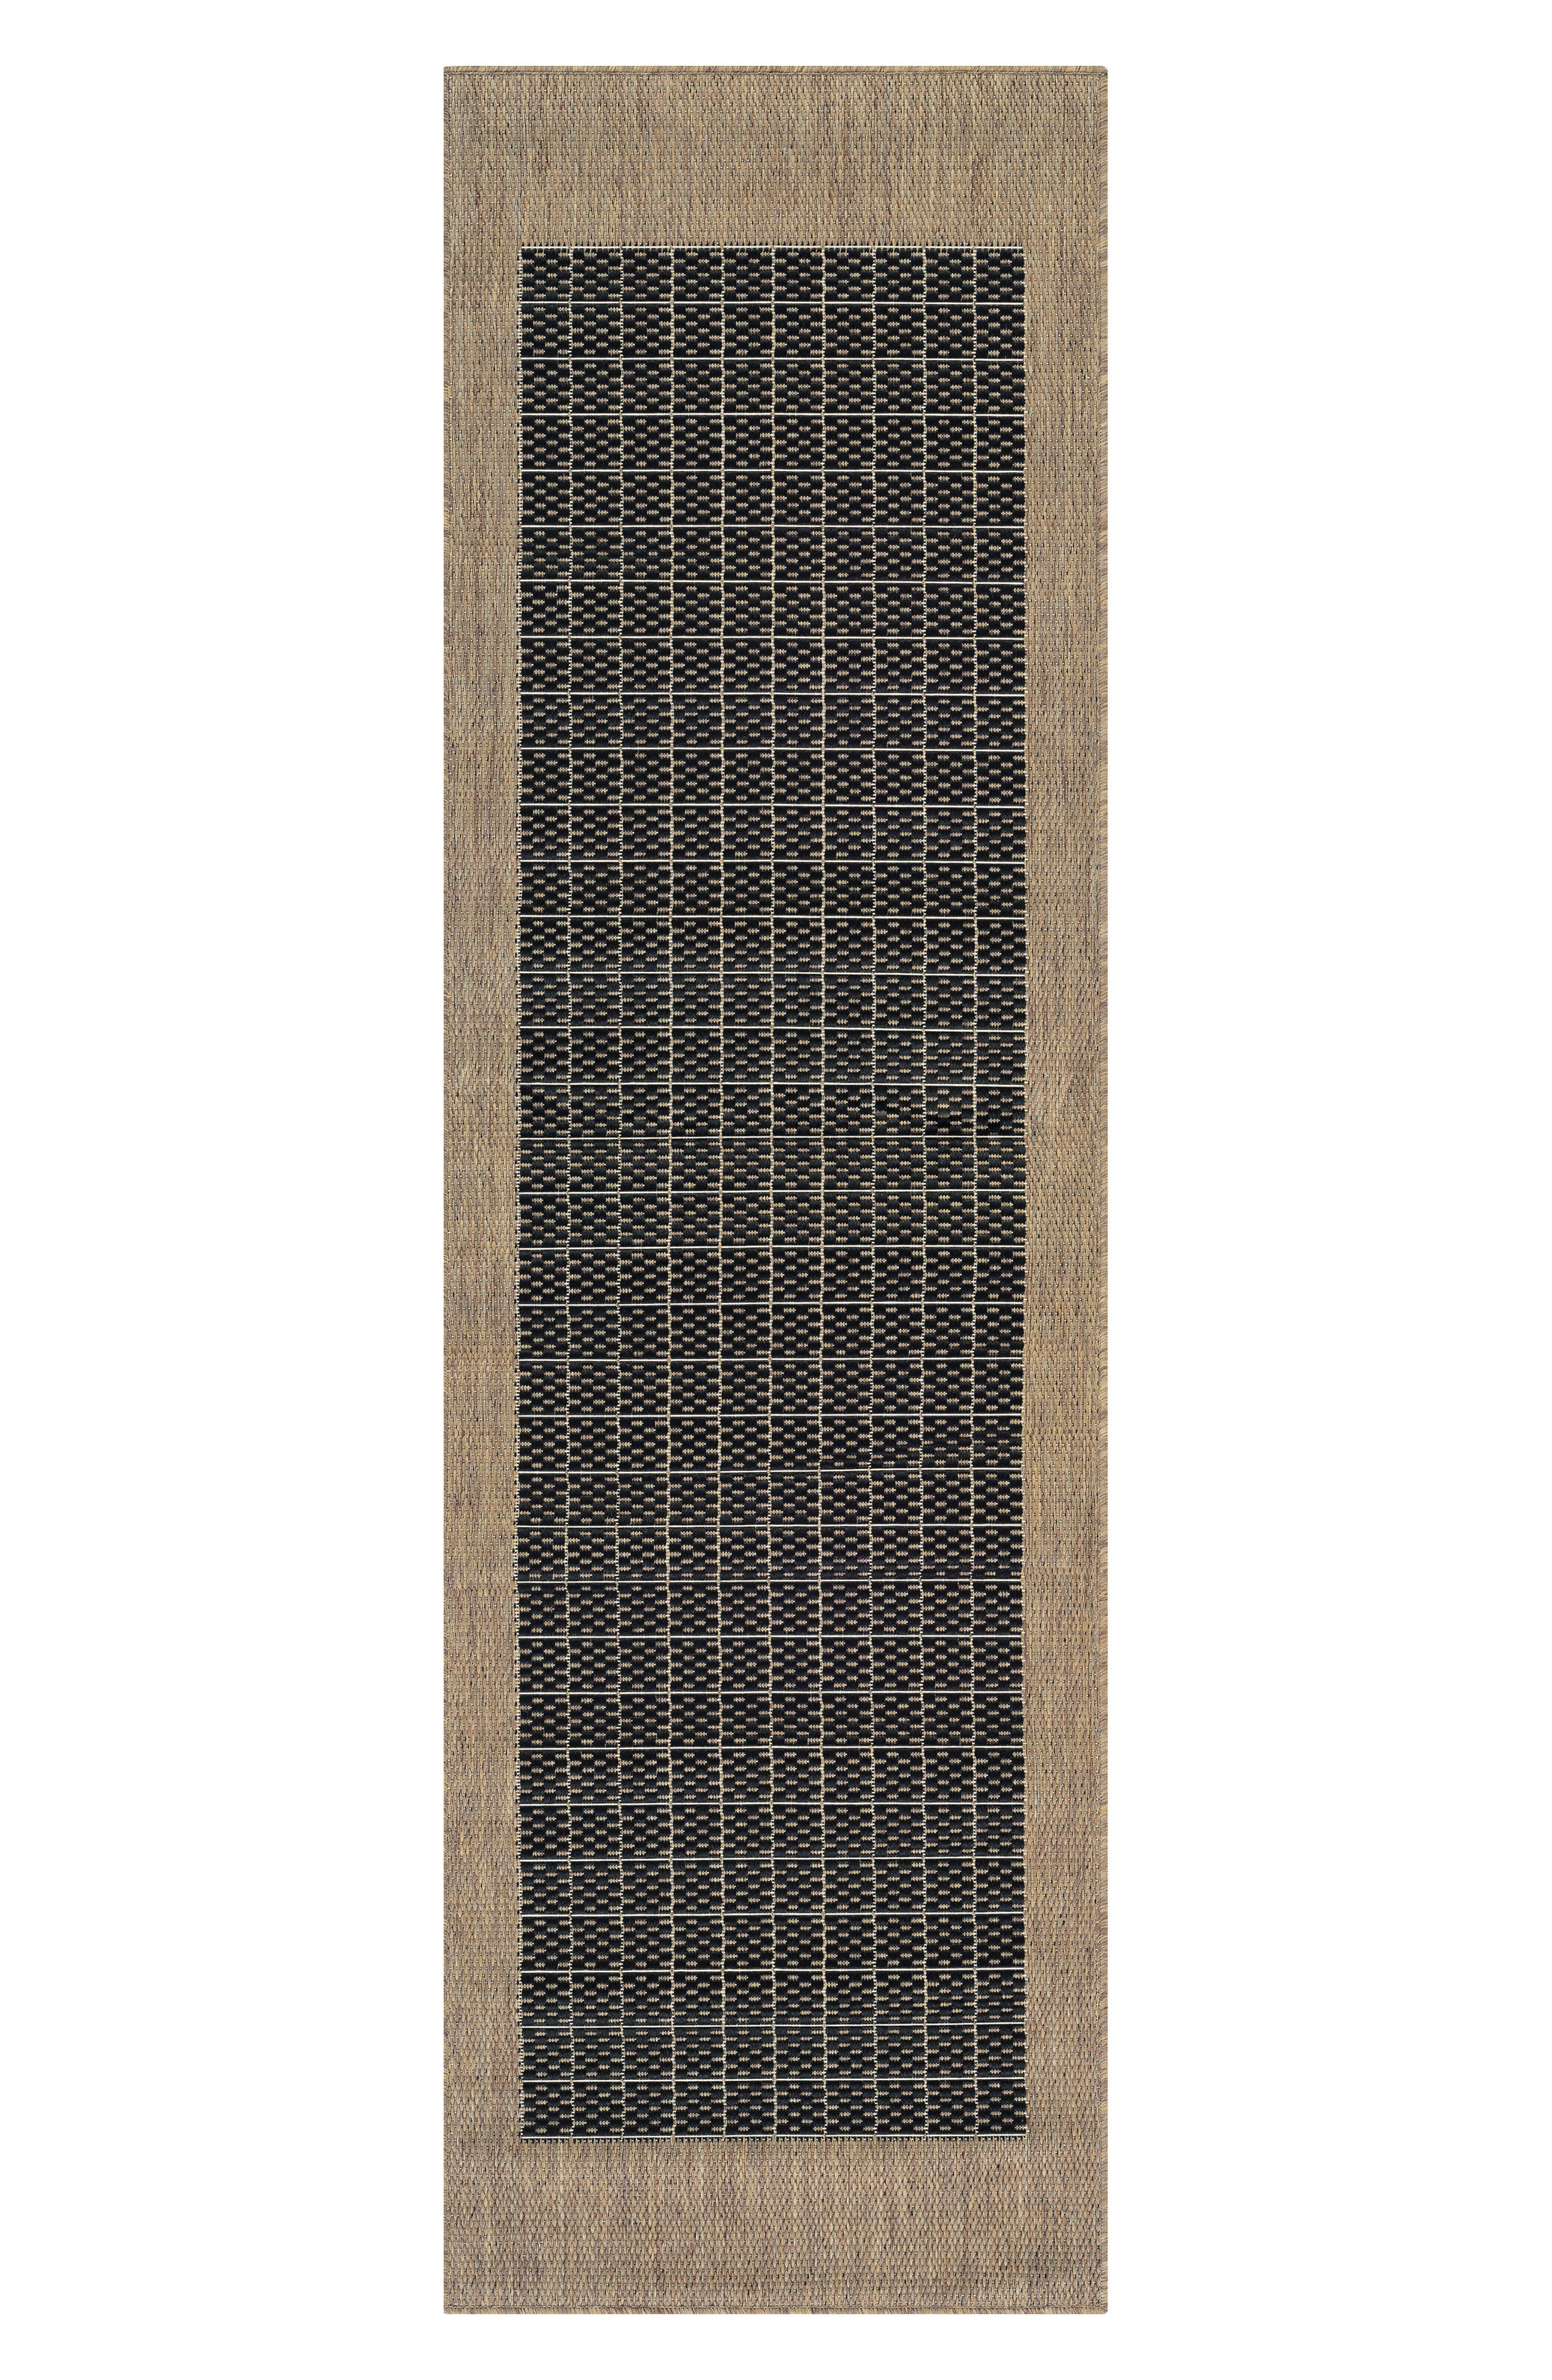 Checkered Field Indoor/Outdoor Rug,                             Alternate thumbnail 3, color,                             001